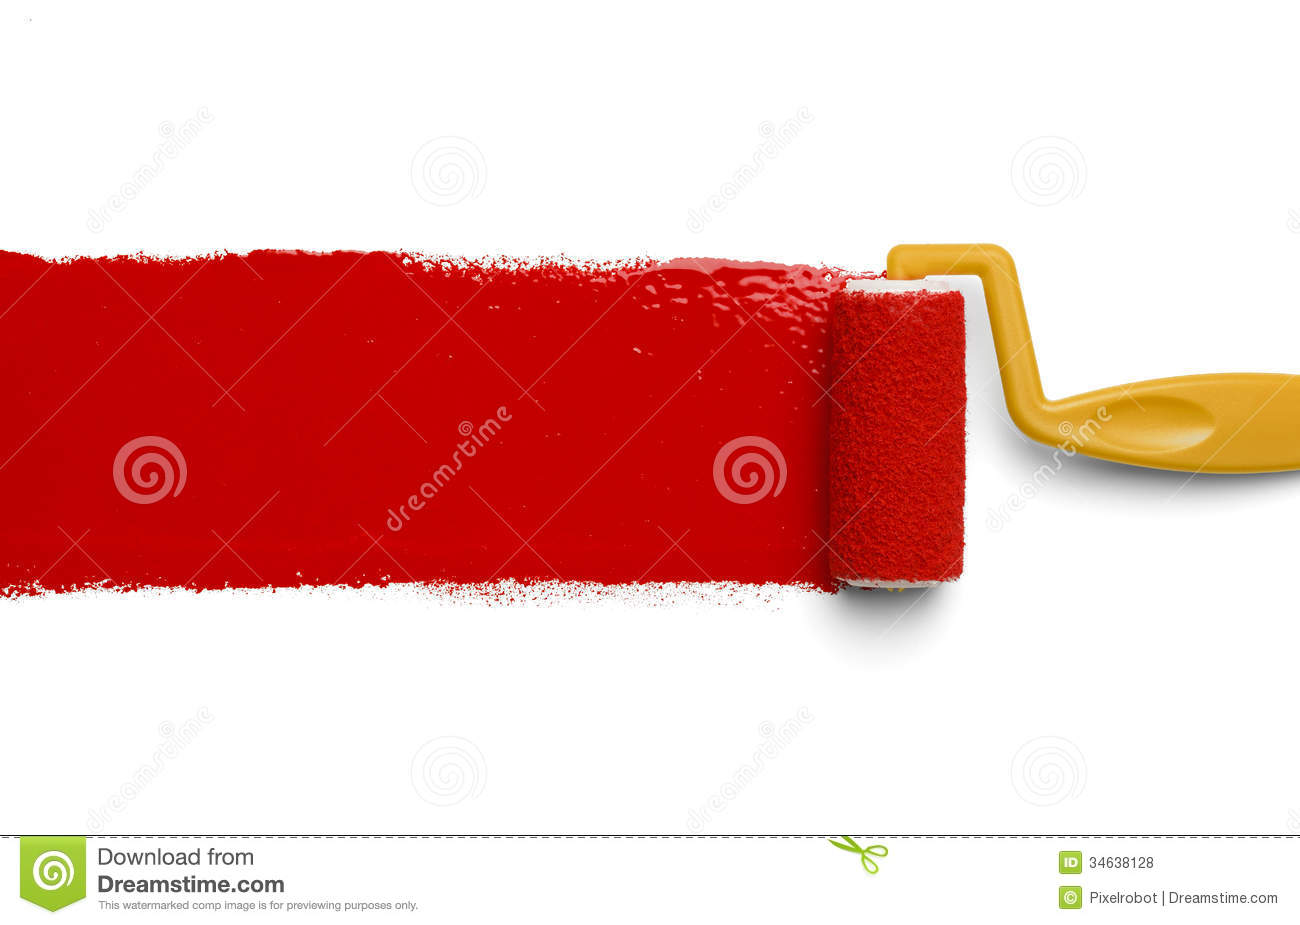 Red Paint paint roller with red paint stock photography - image: 9837272